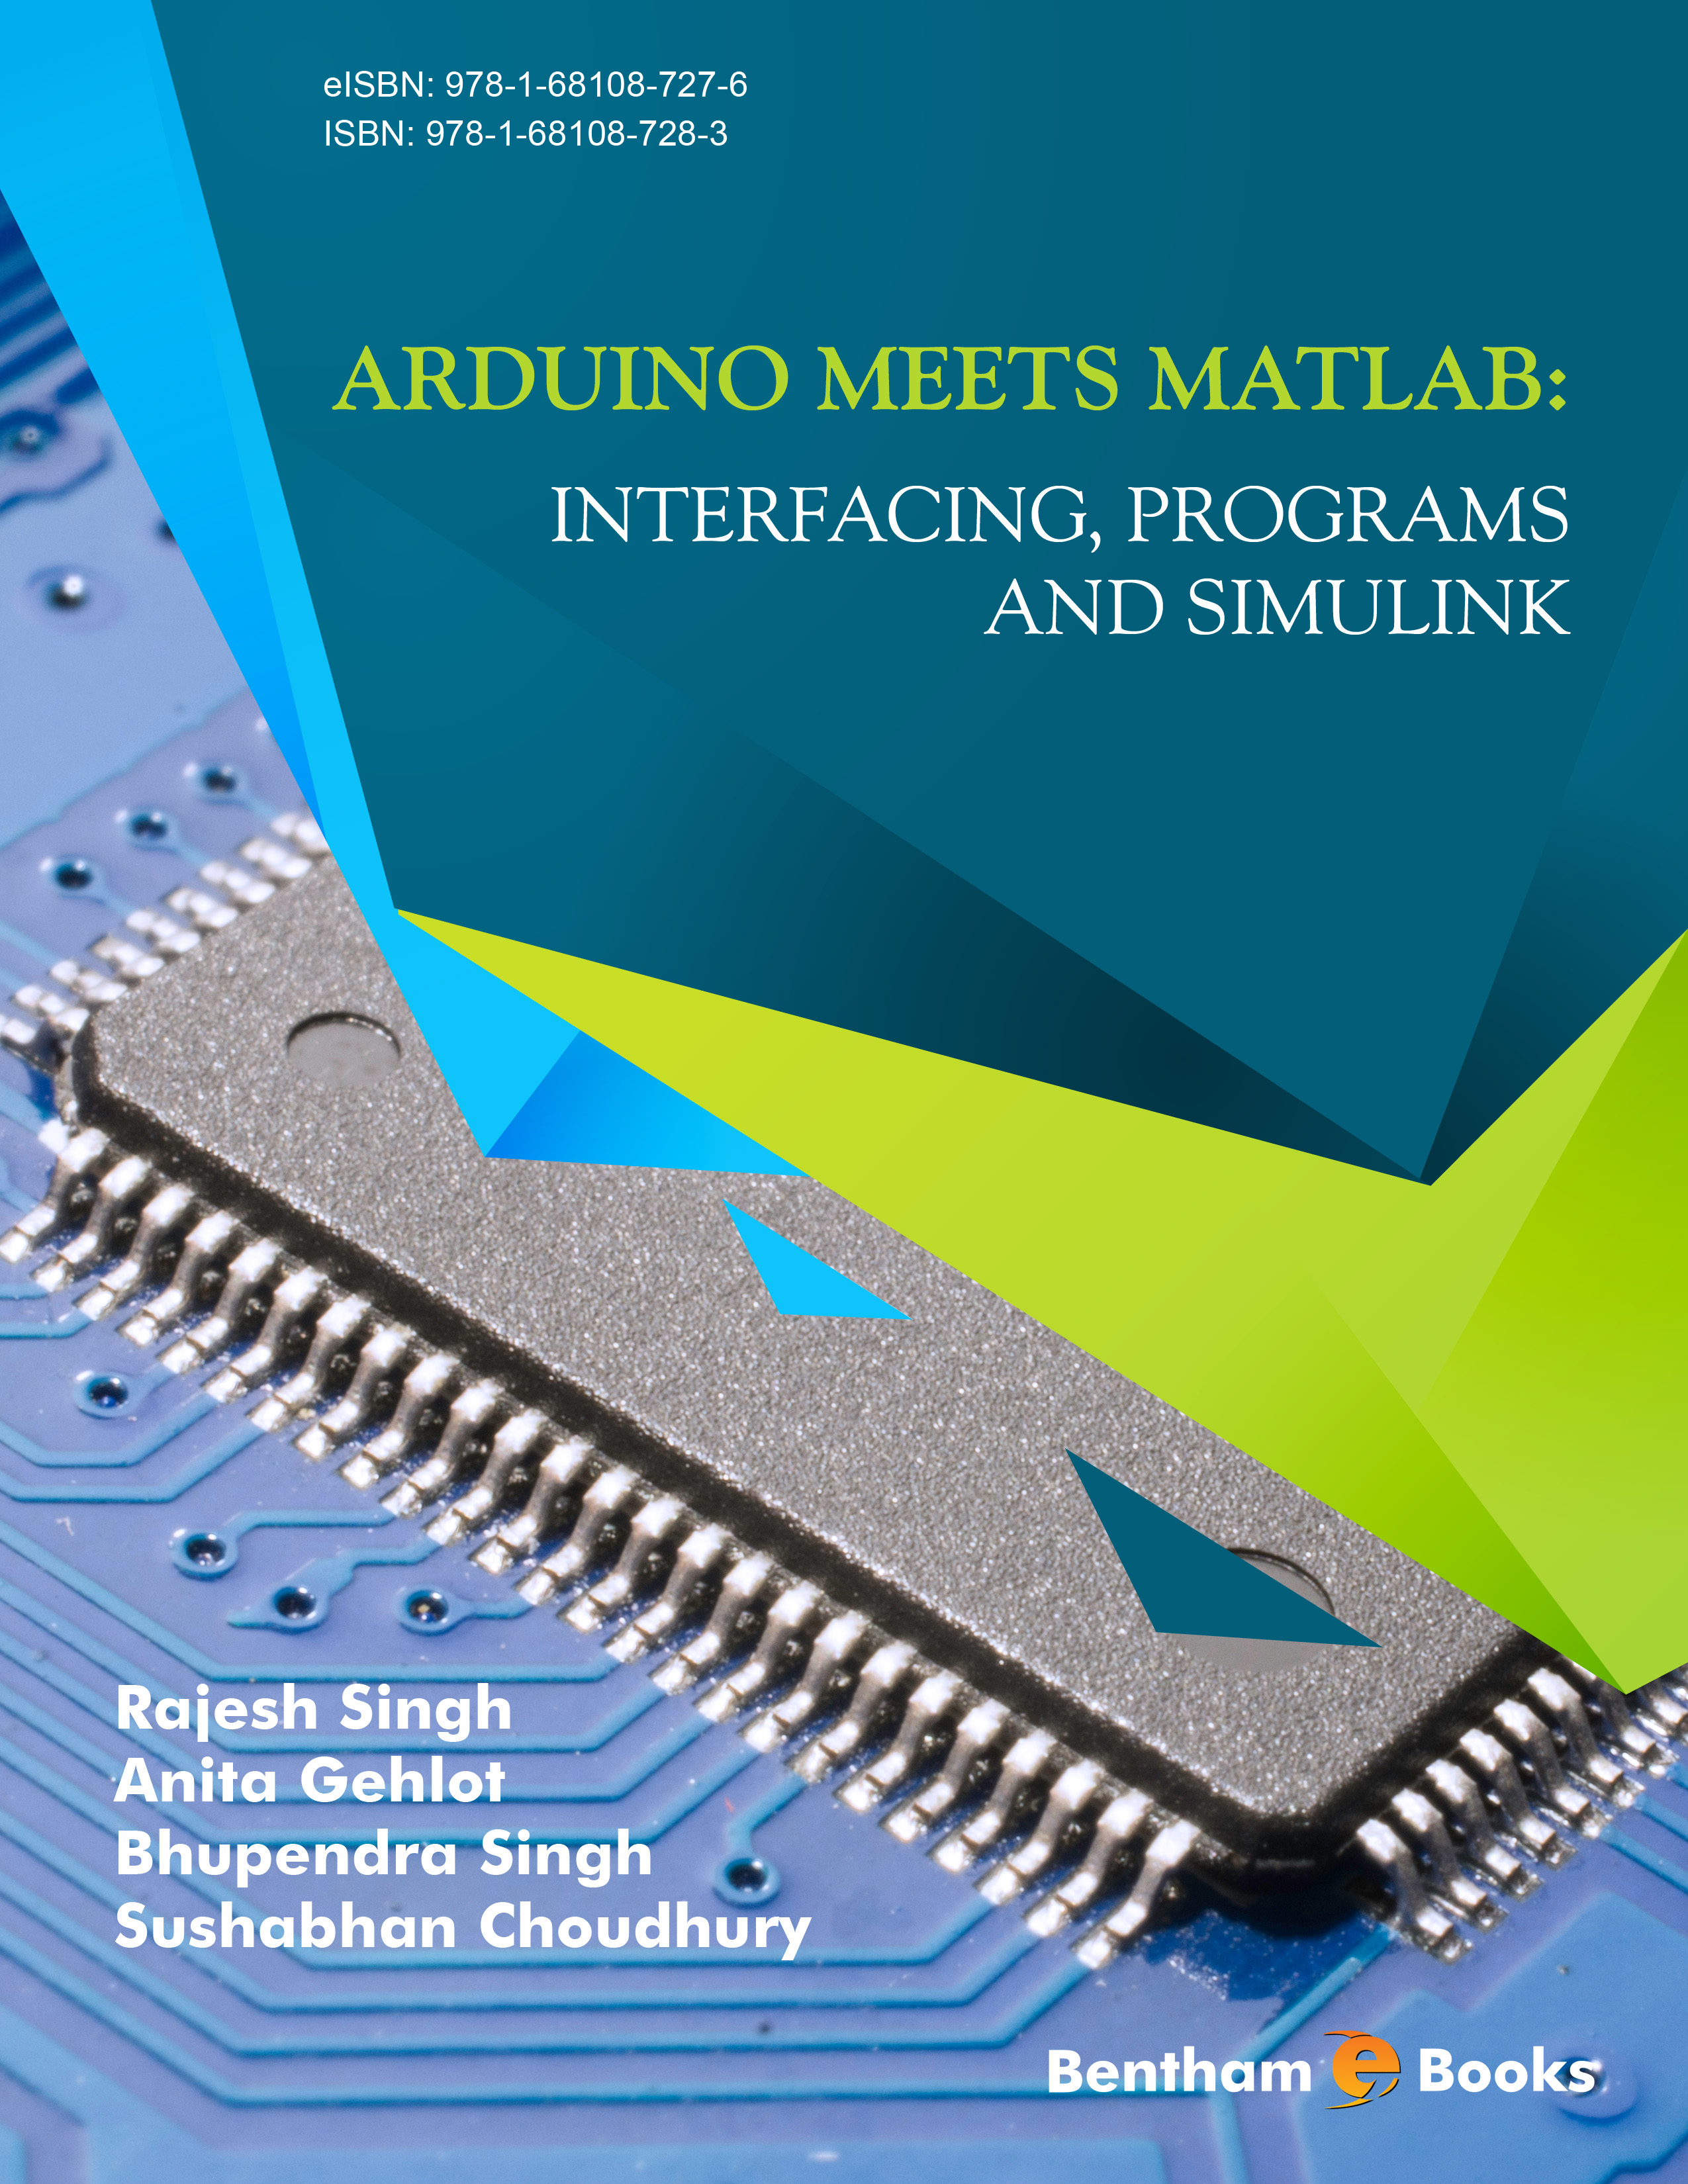 Arduino meets MATLAB: Interfacing, Programs and Simulink